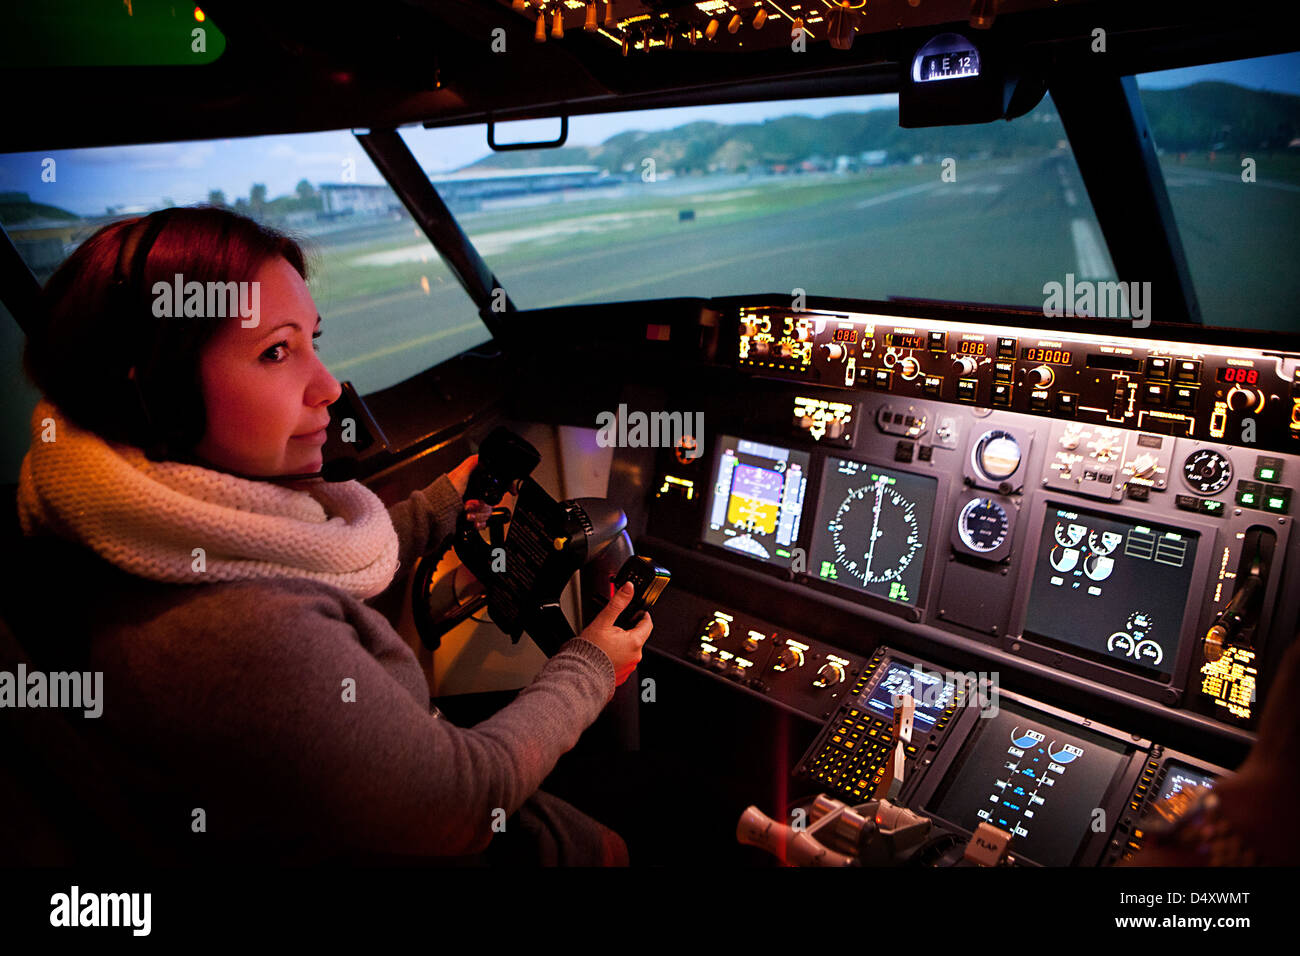 Fear Of Flying Plane Stock Photos & Fear Of Flying Plane